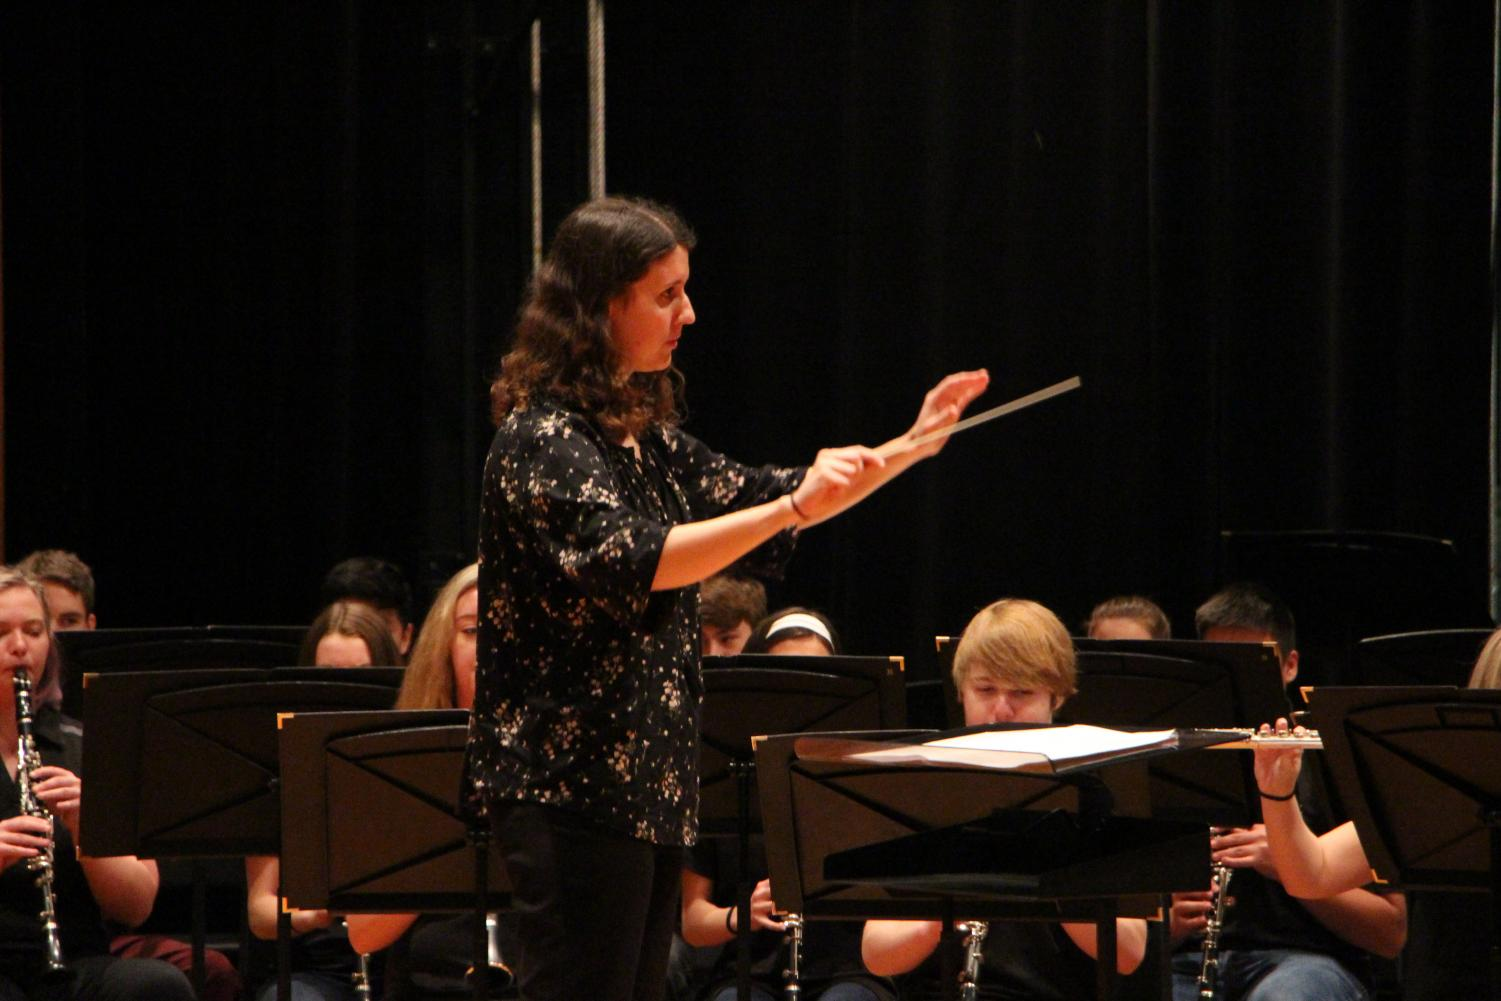 With arms lifted, assistant band director Laura Bock conducts her students. She conducted the band through two songs at the band festival on Thursday April 4.